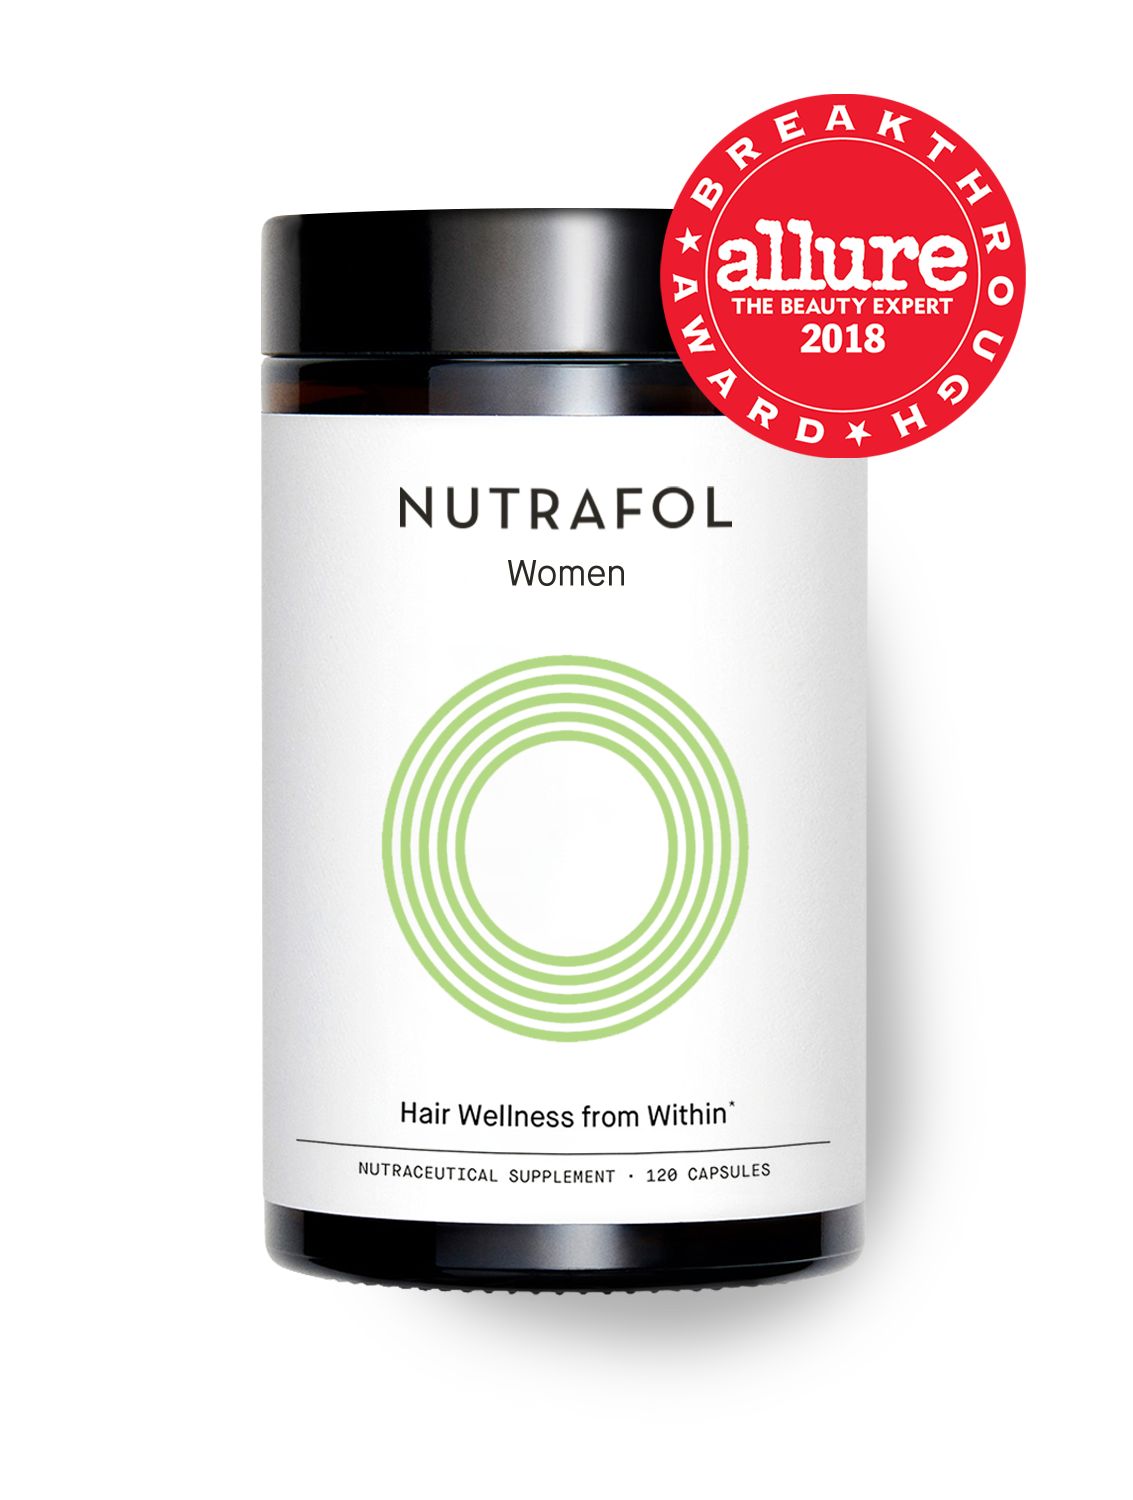 Nutrafol – WOMEN (1 Month Supply) product shot